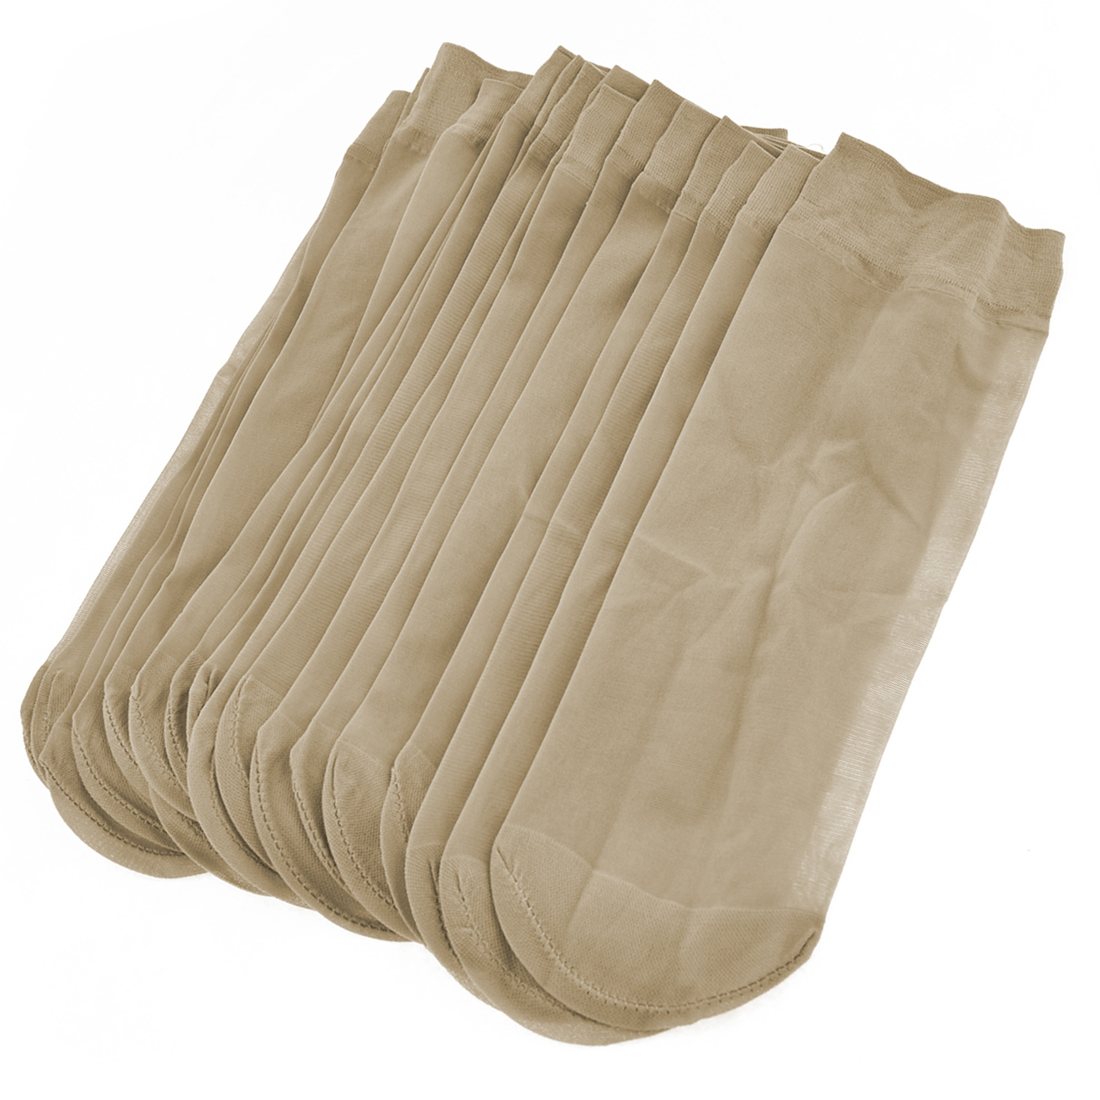 10 Pairs Beige Stretchy Short Sheer Socks for Ladies